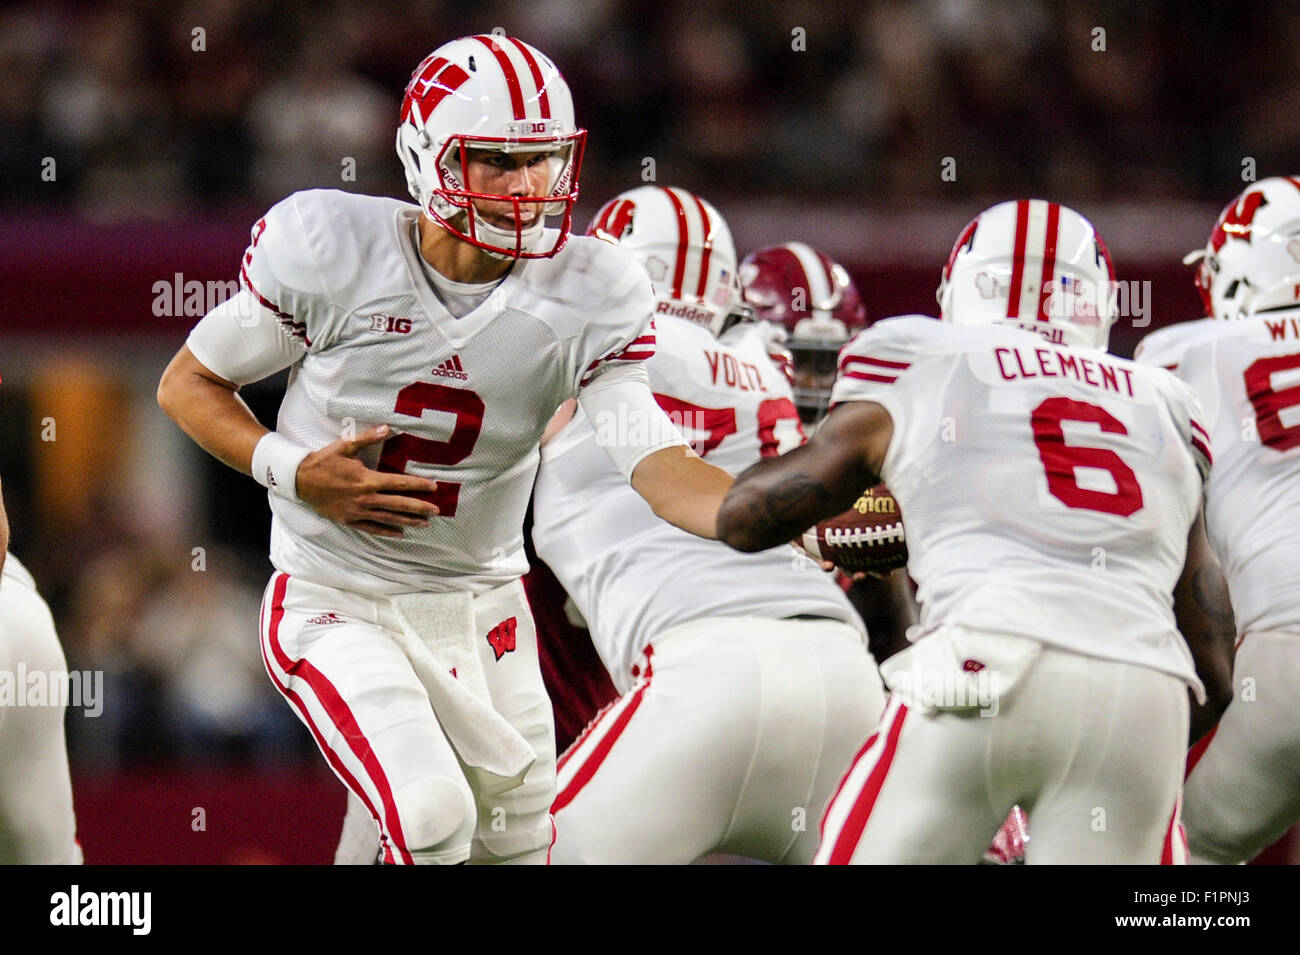 Wisconsin quarterback Joel Stave (2) turns to hand the ball to running back Corey Clement (6) during an NCAA football - Stock Image